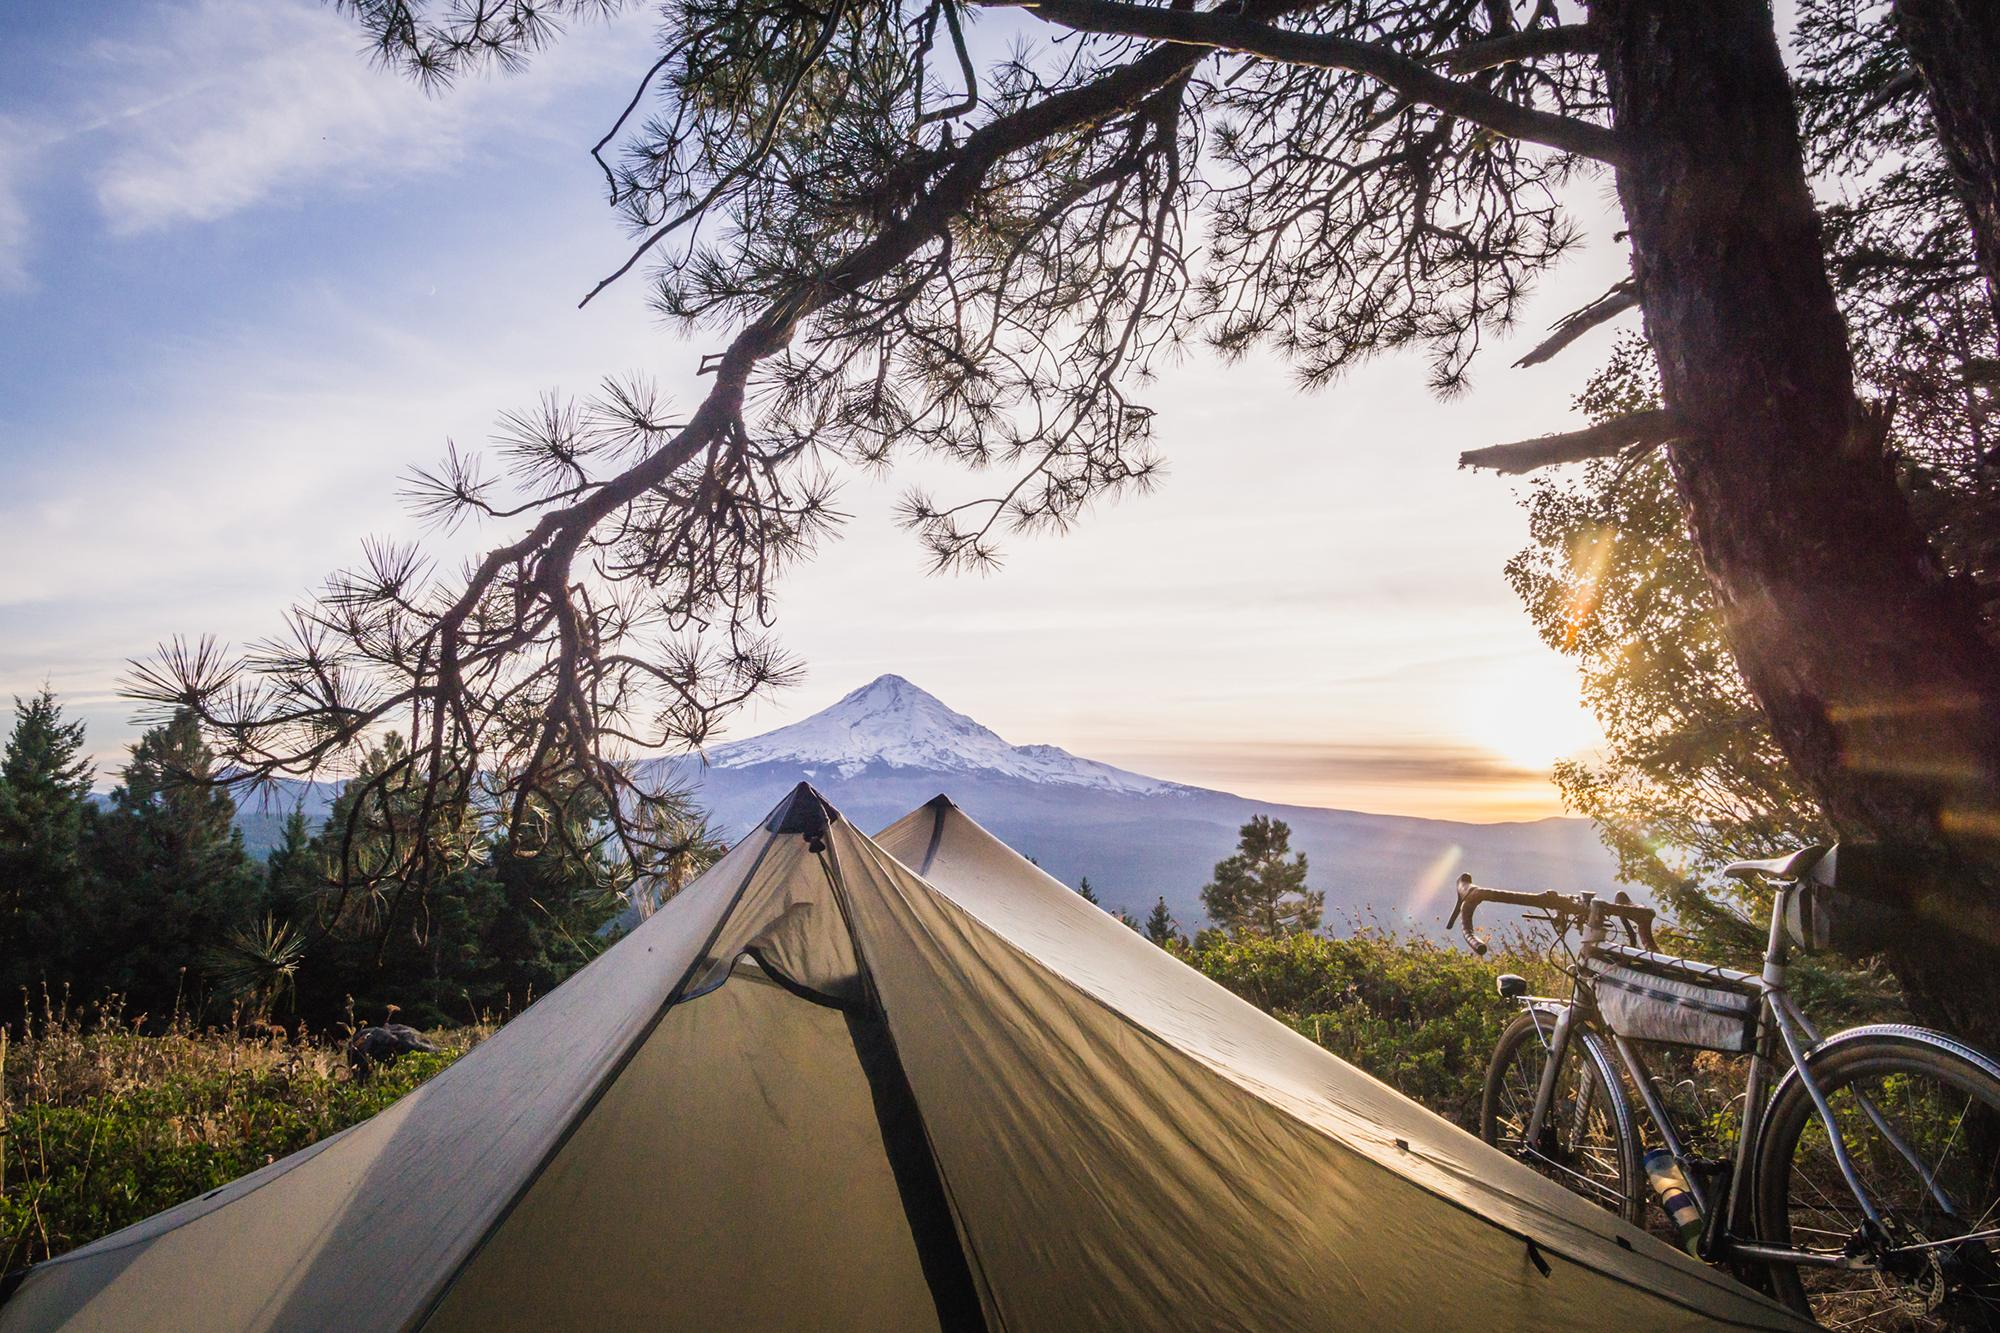 Bush camp with a view